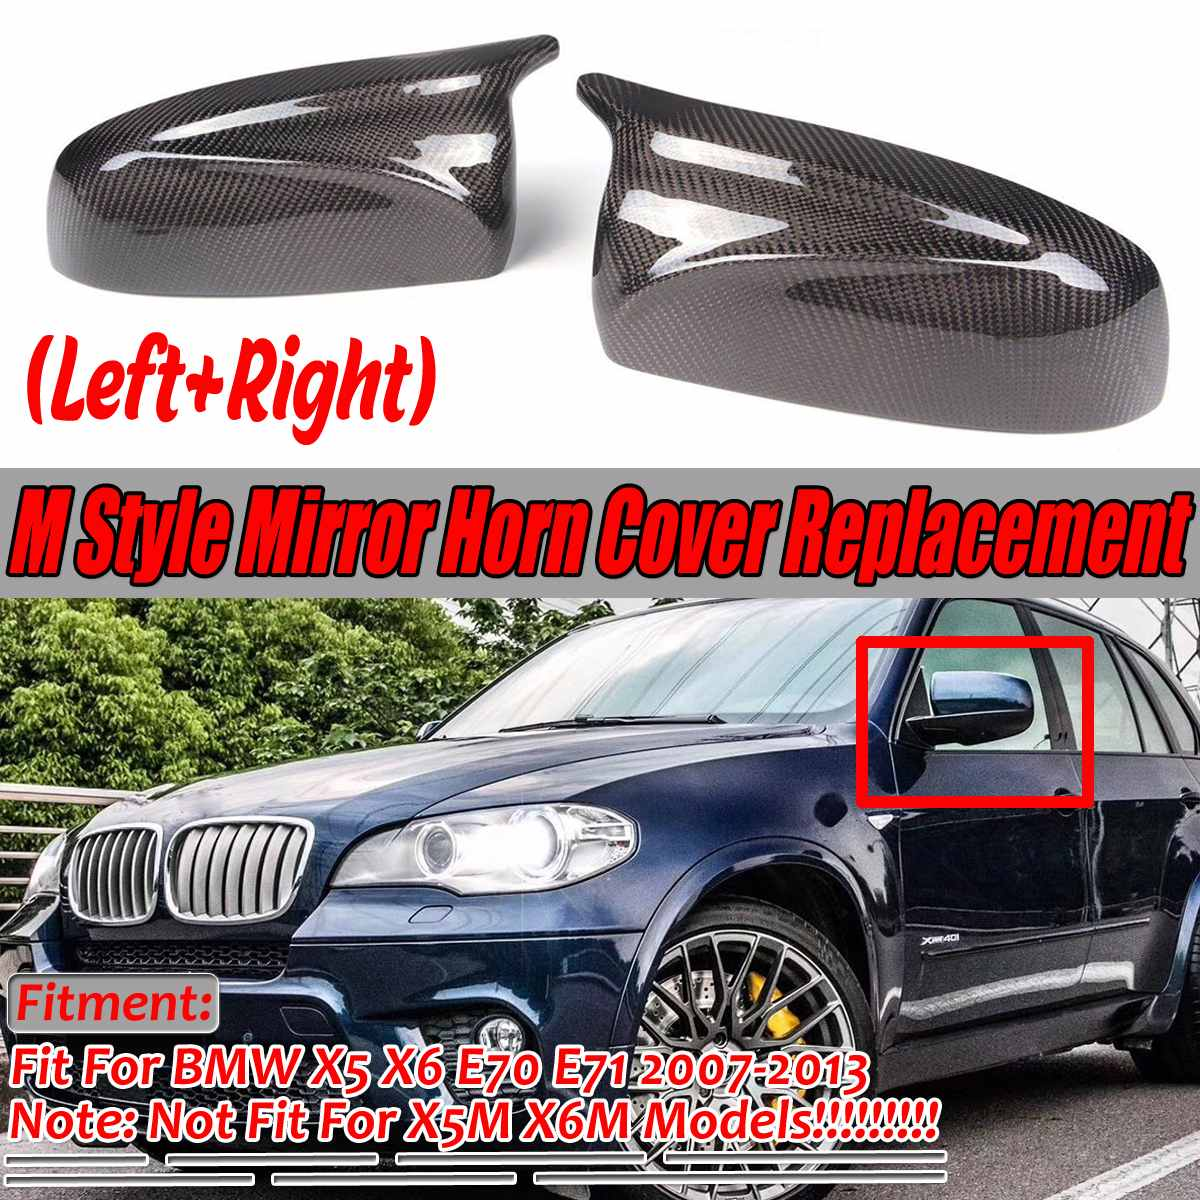 A Pair Real Carbon Fiber/ABS Mirror Cover X5 X6 Car Side Rearview Mirror Cap Cover Replacement For BMW X5 X6 E70 E71 2007-2013